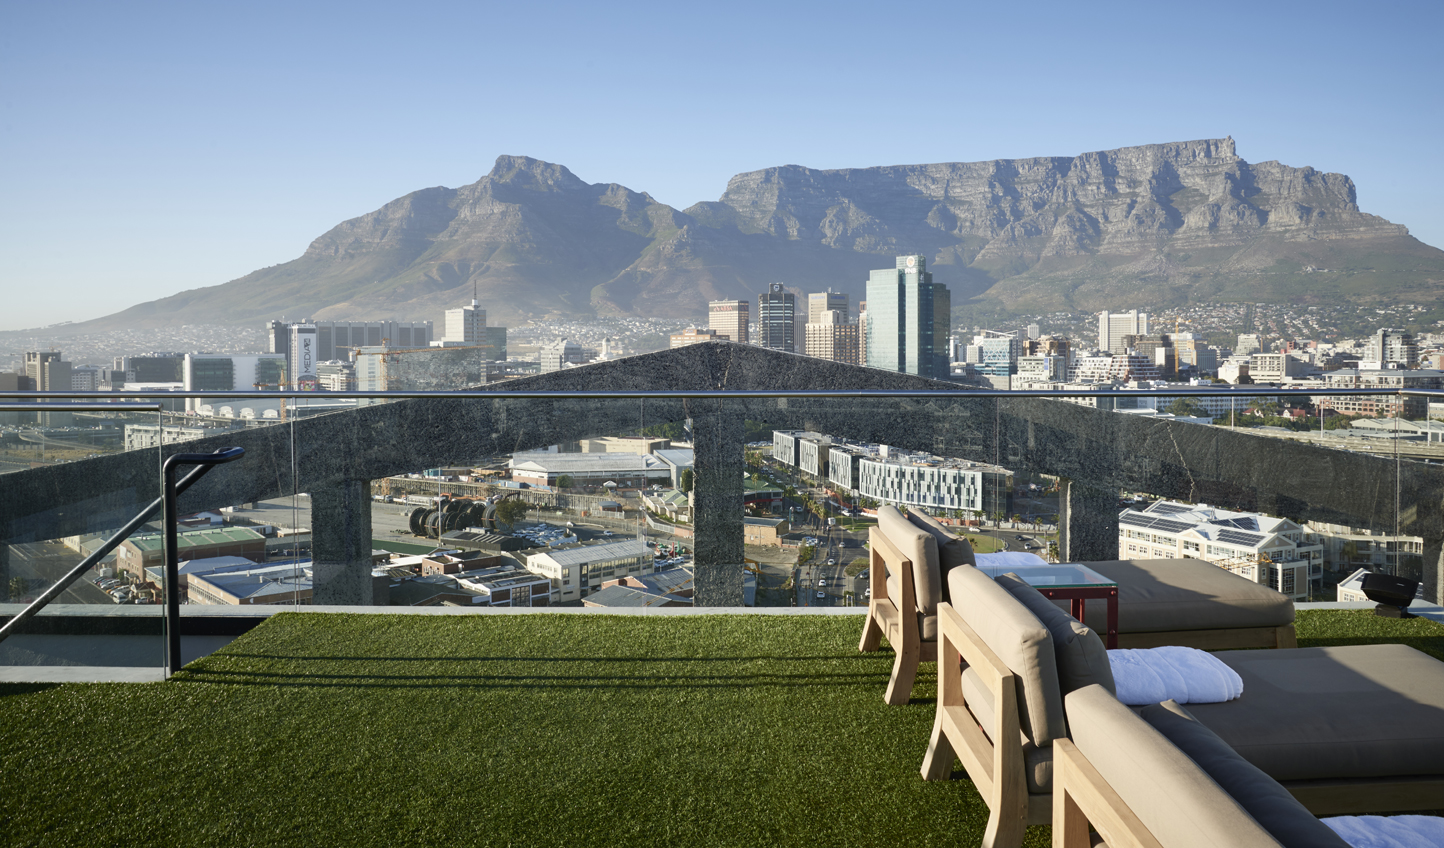 Head up to the roof for panoramic views over Table Mountain